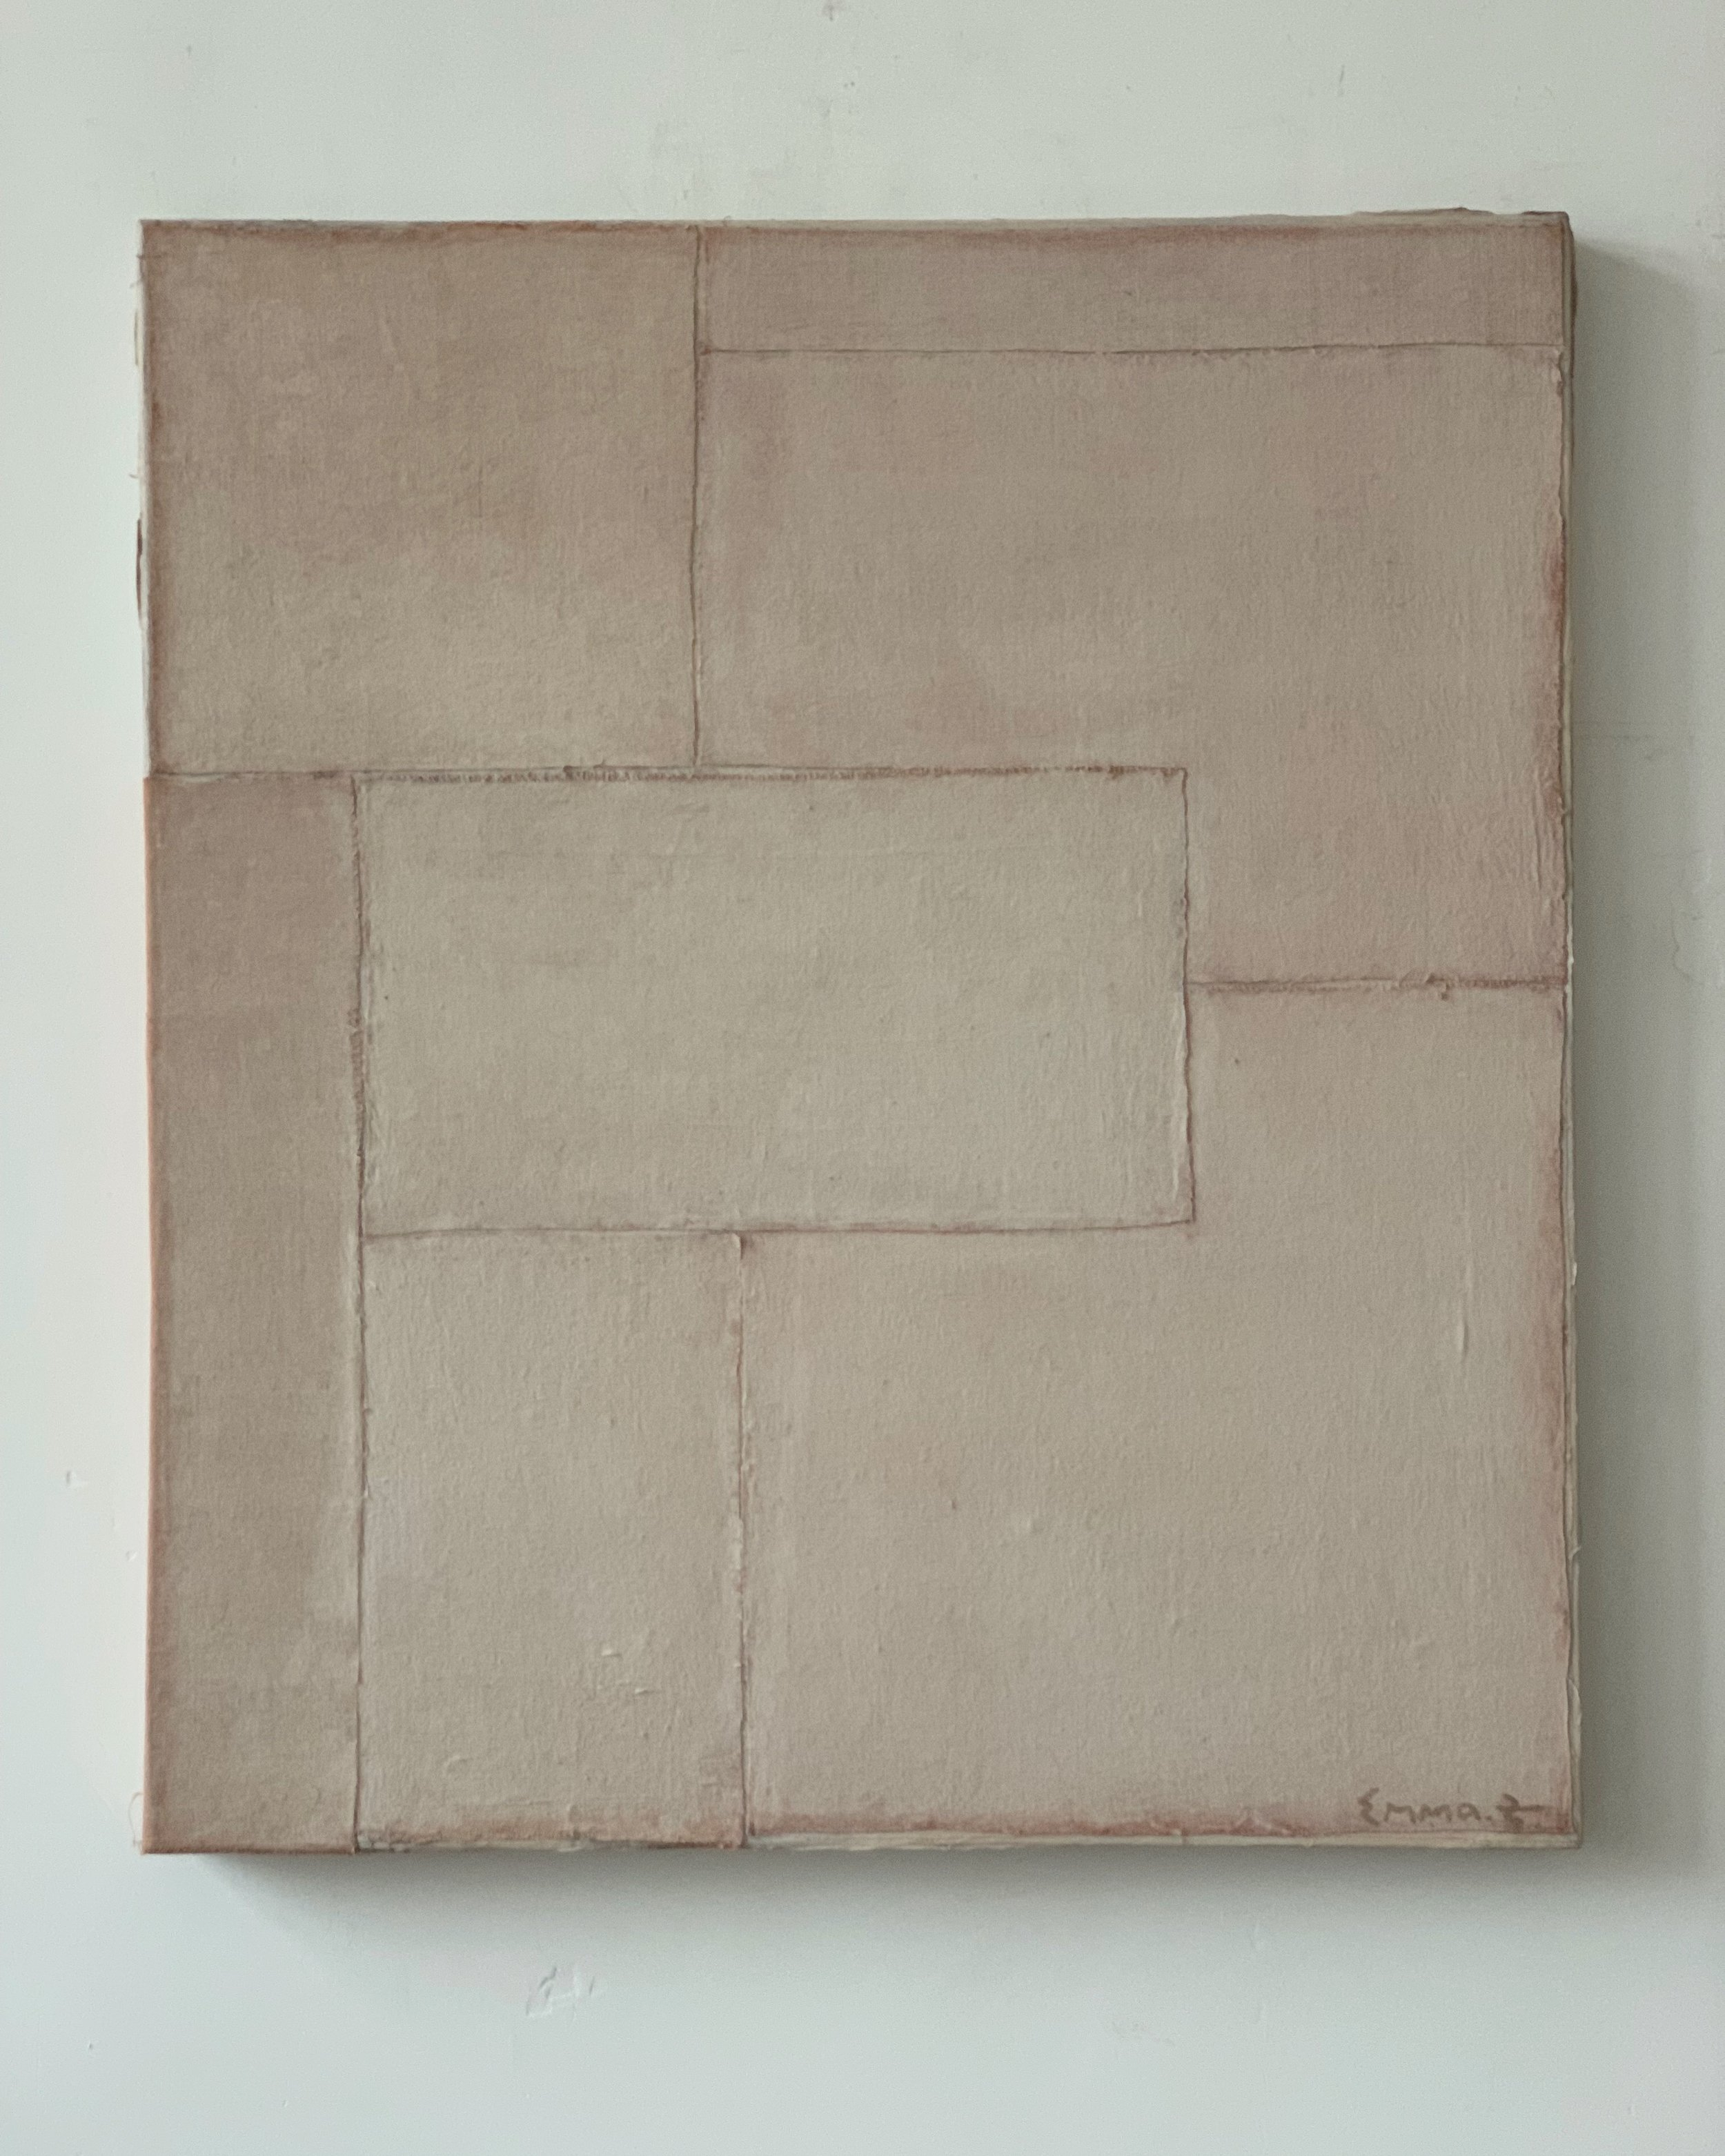 Untitled  Mixed media on canvas 31.50 x 27.56 inches 80 x 70 cm 2019